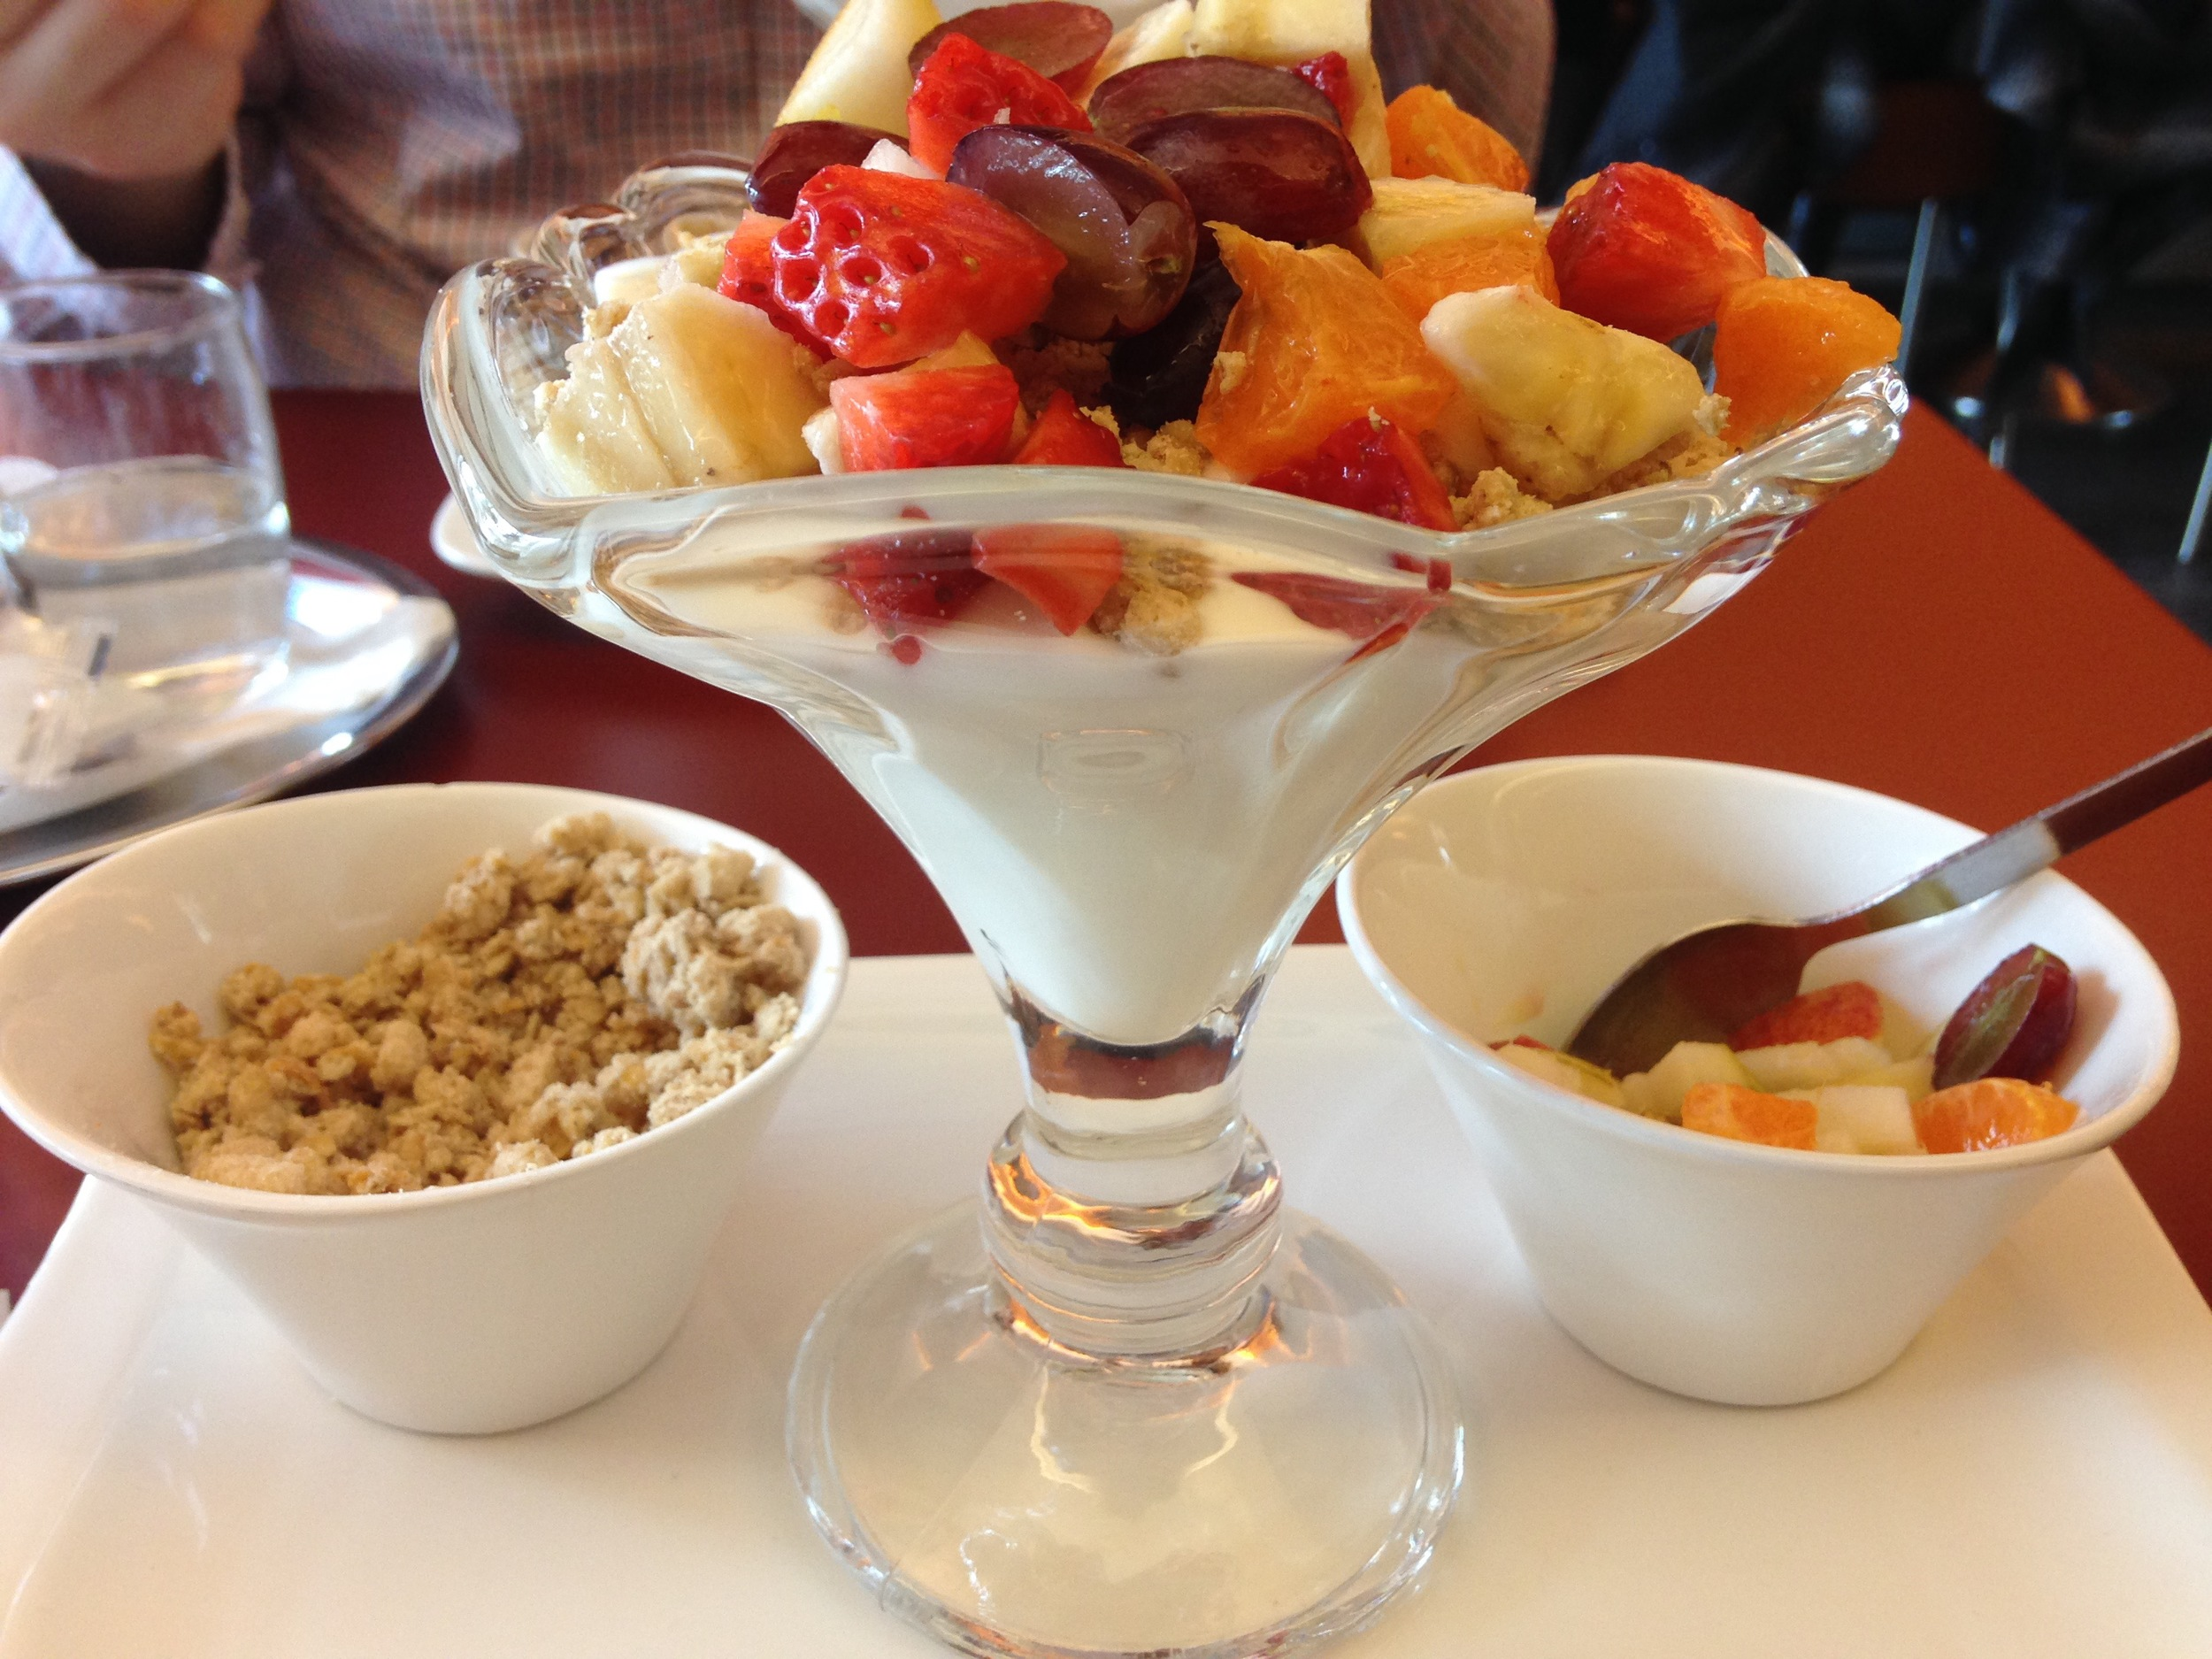 Austrian Breakfast of Champtions: creamy yogurt, chopped fruit, and the best granola I've ever had. My mouth is watering.